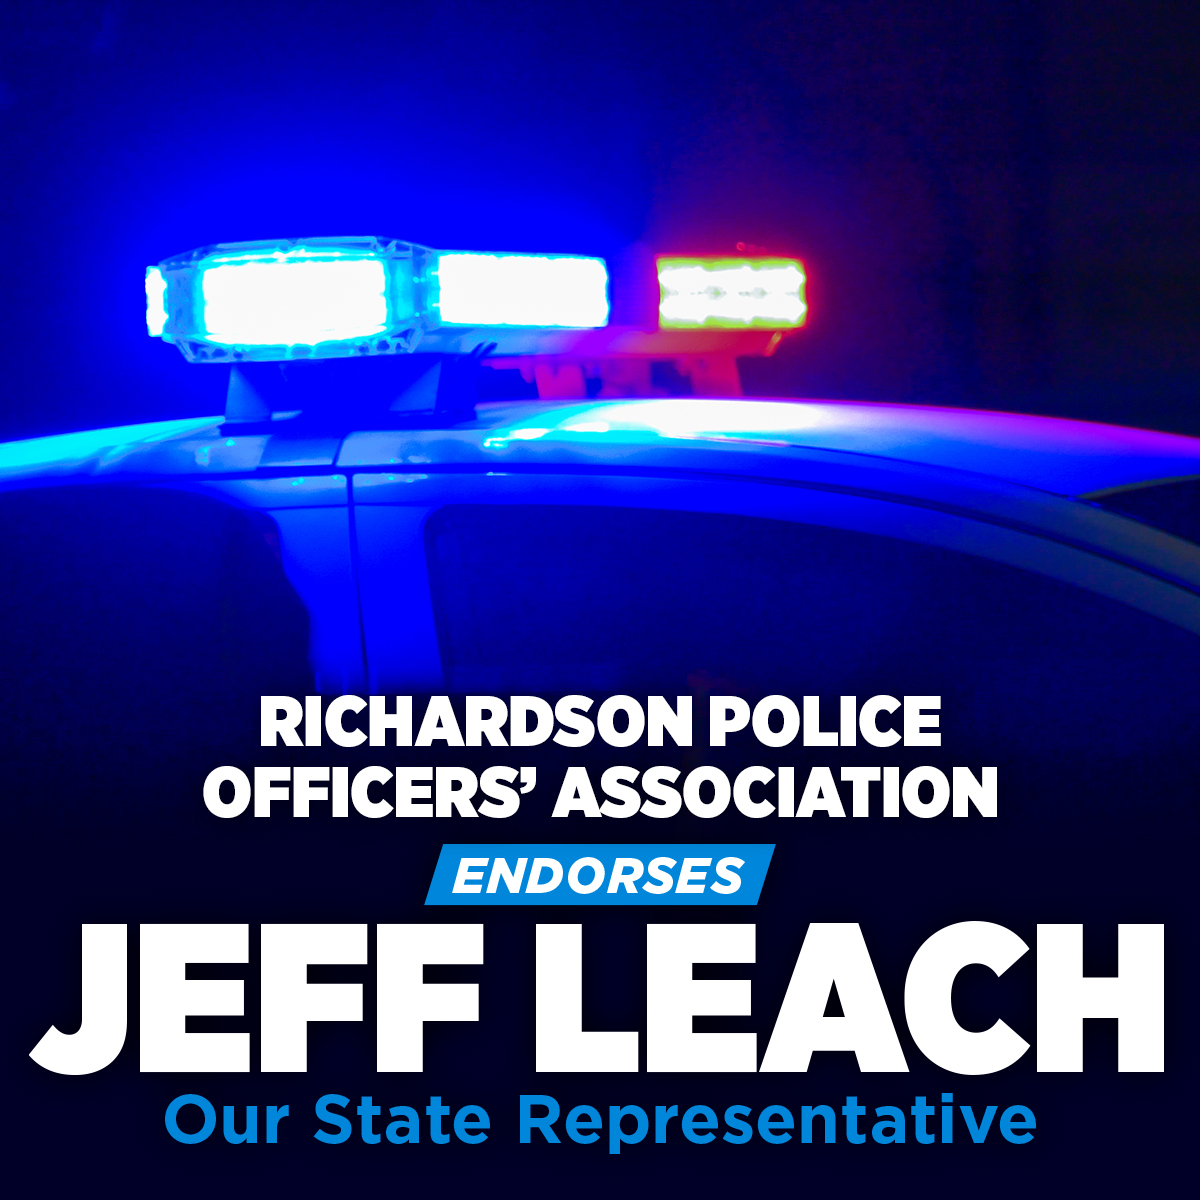 Richardson Police Officers' Association Endorses State Rep. Jeff Leach